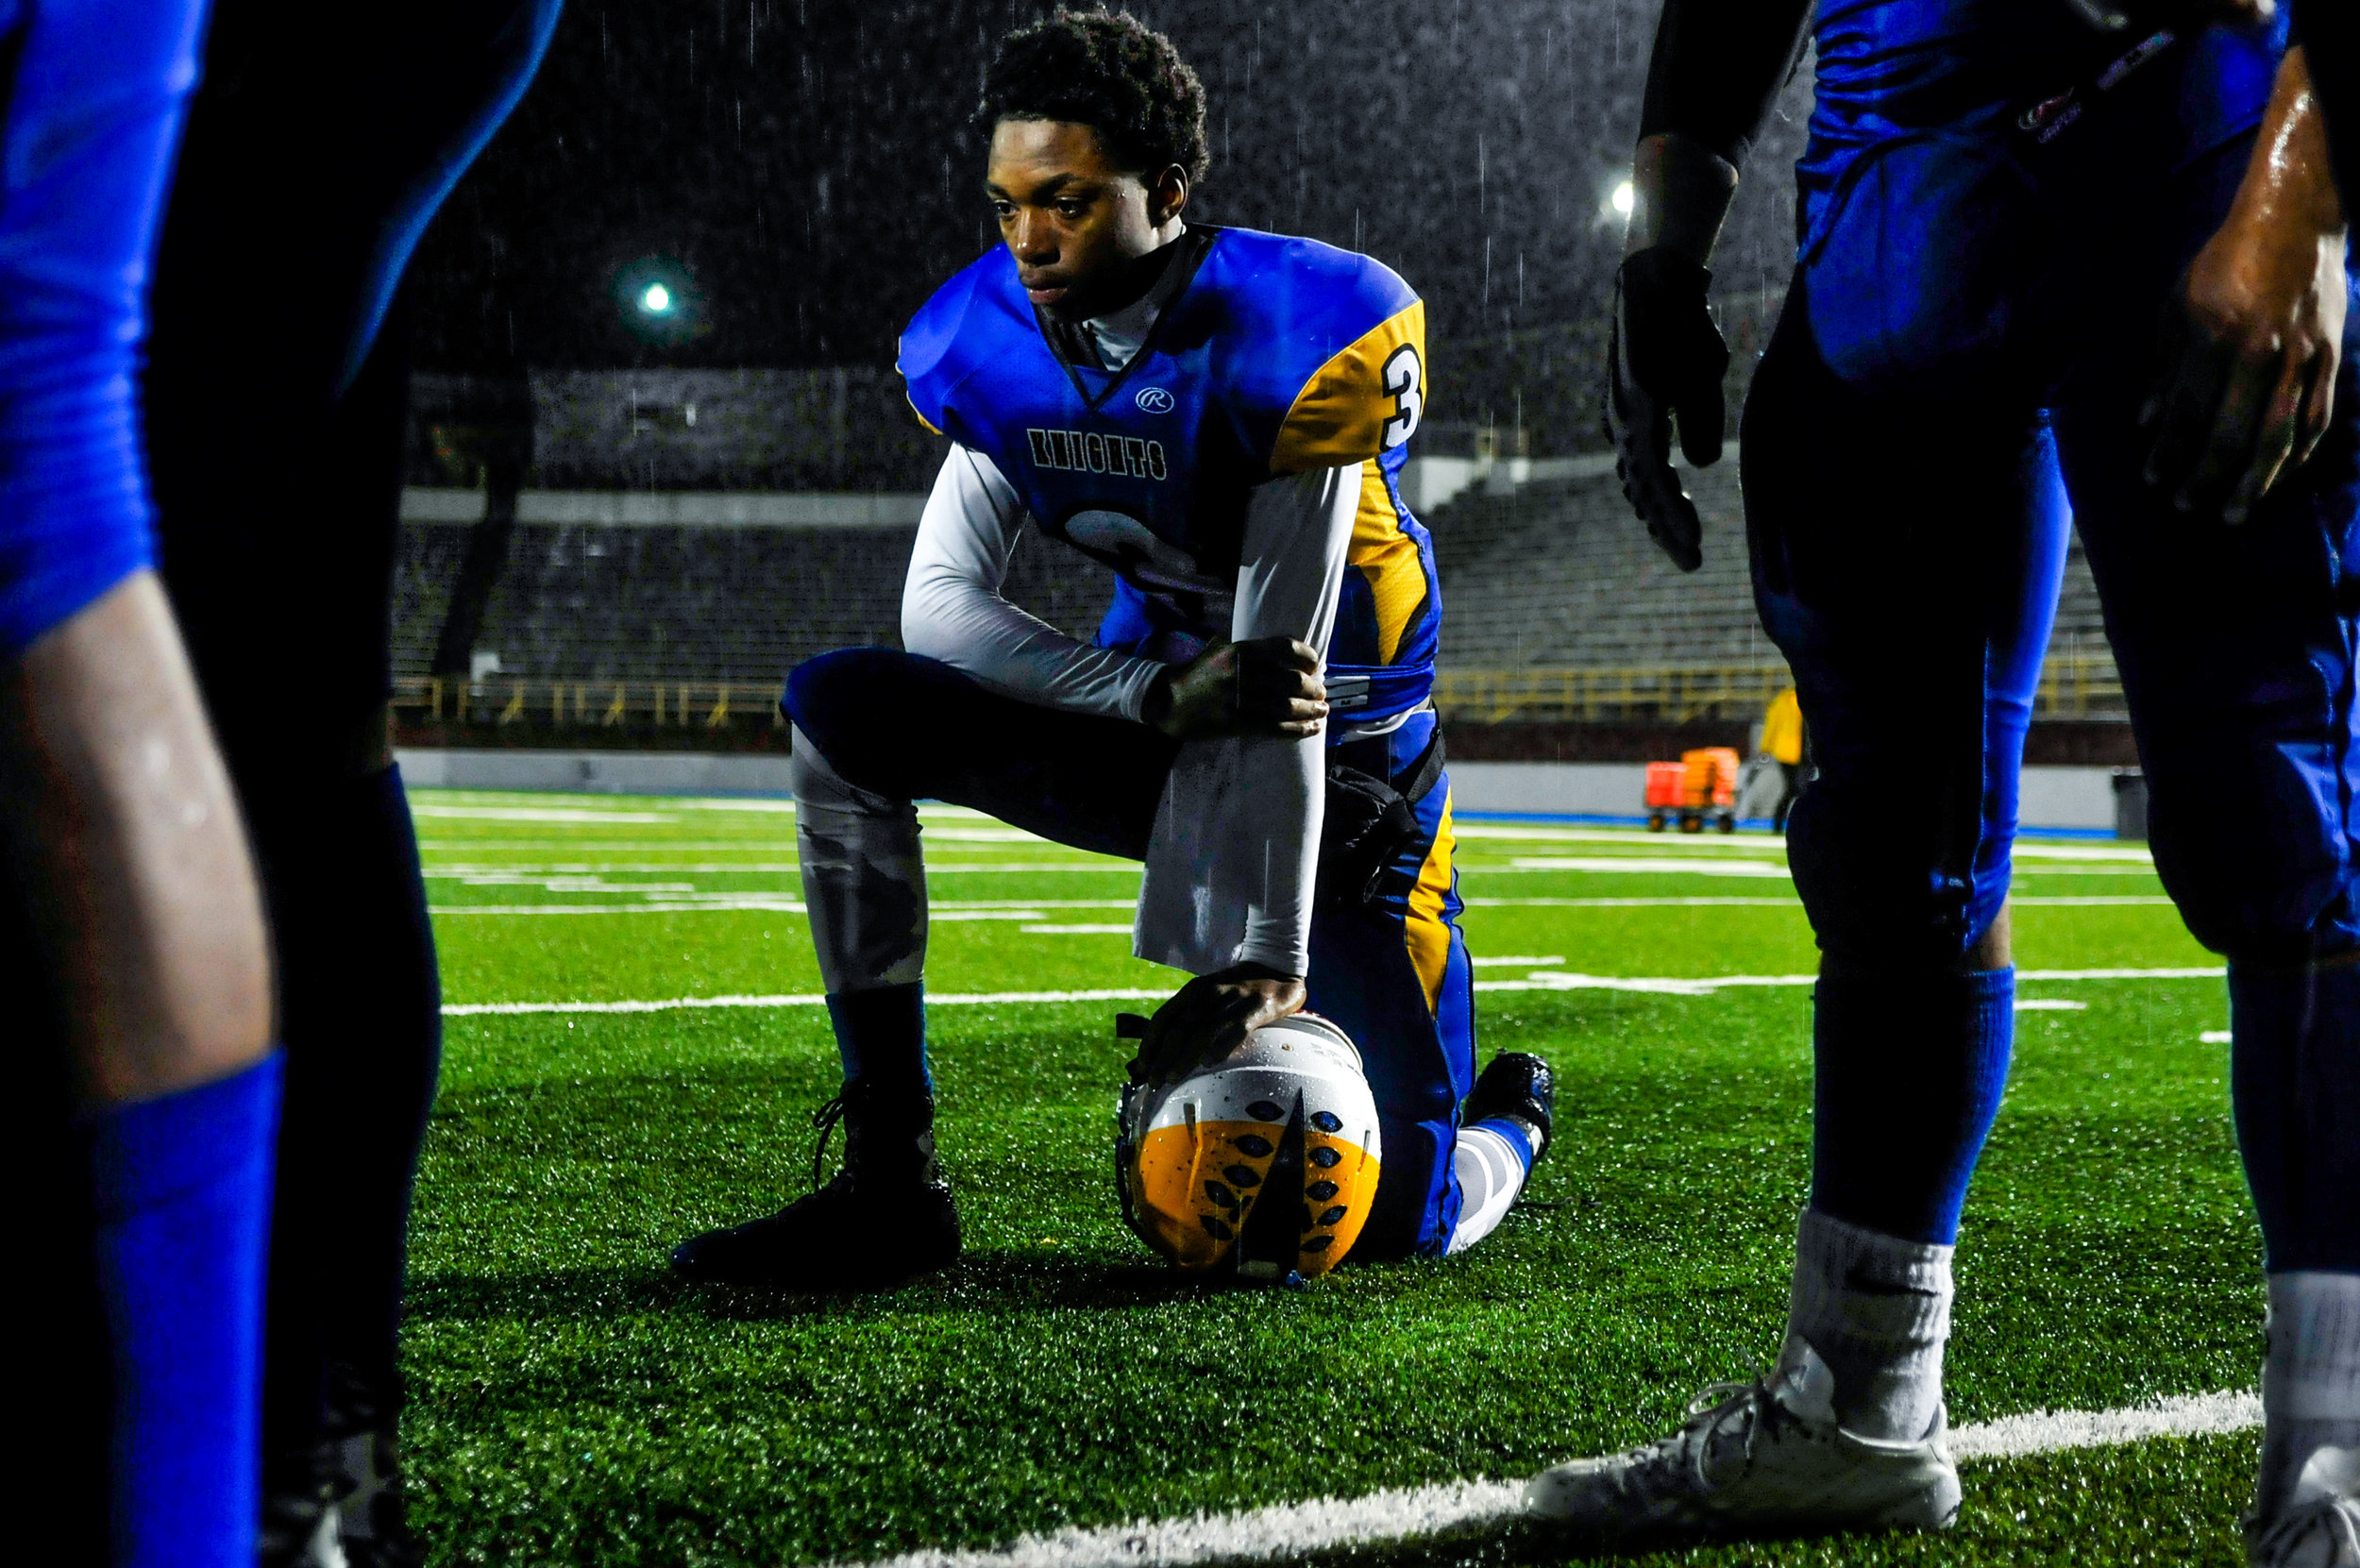 Flint Southwestern sophomore Zameer Wallace, No. 3,kneels while he listens to his coach after a tough loss in the final seconds of the game against Mount Pleasant High School on Friday, Sept. 30, 2016 at Kettering University's Atwood Stadium in Flint. Mt Pleasant beat Flint Southwestern 14-13.